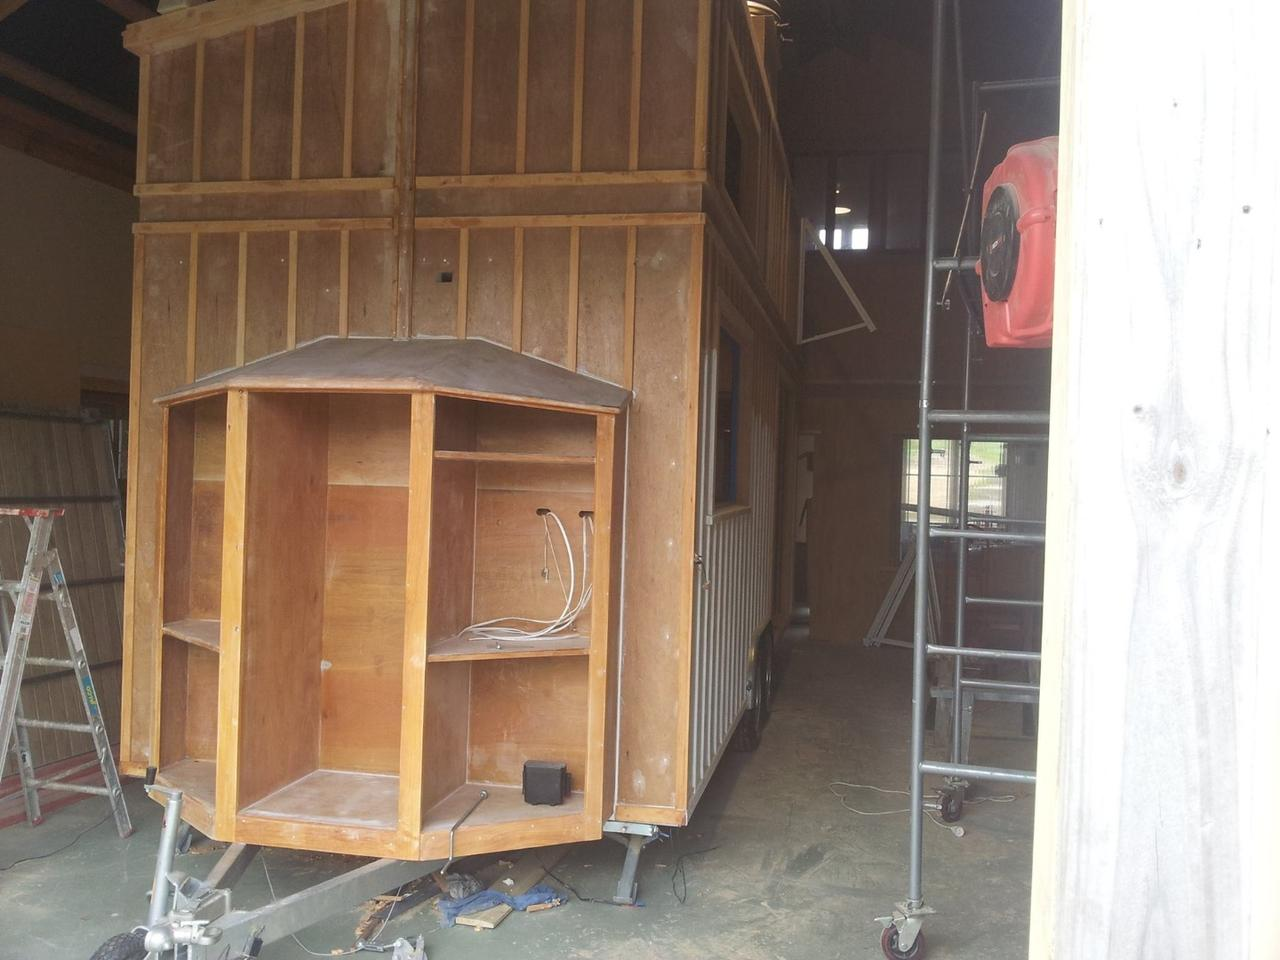 The 23.95 sq m (257.8 sq ft) house was built using structural insulated panels (SIPs) made from plywood and foam